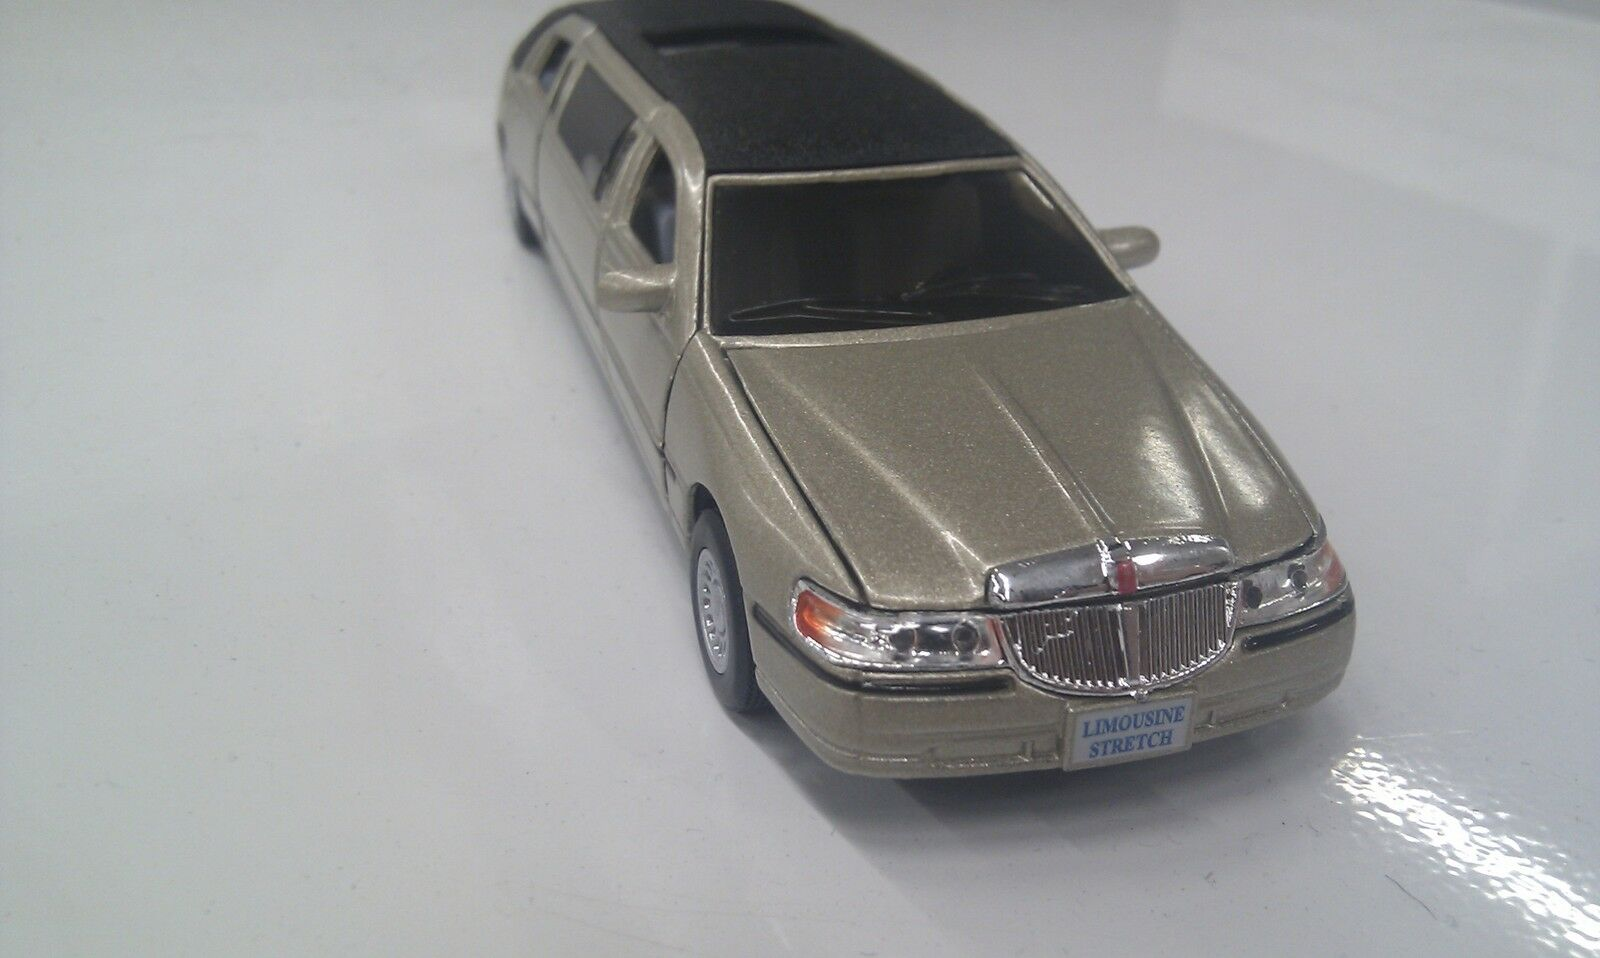 Lincoln town car stretch limousine kinsmart golden toy model diecast 1 38 scale